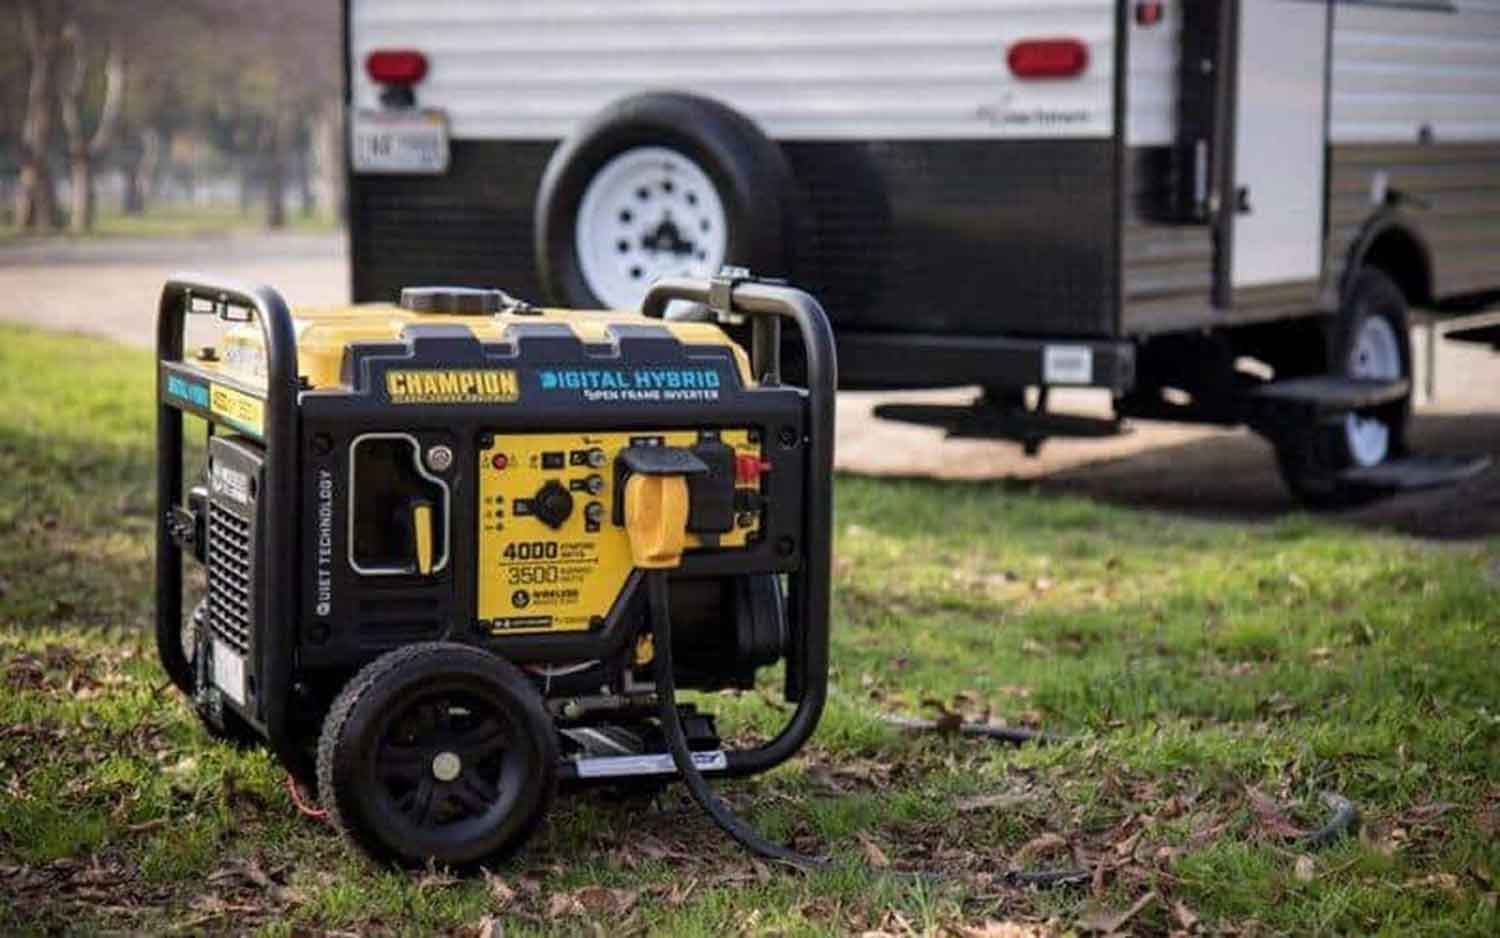 How to quiet generator for camping